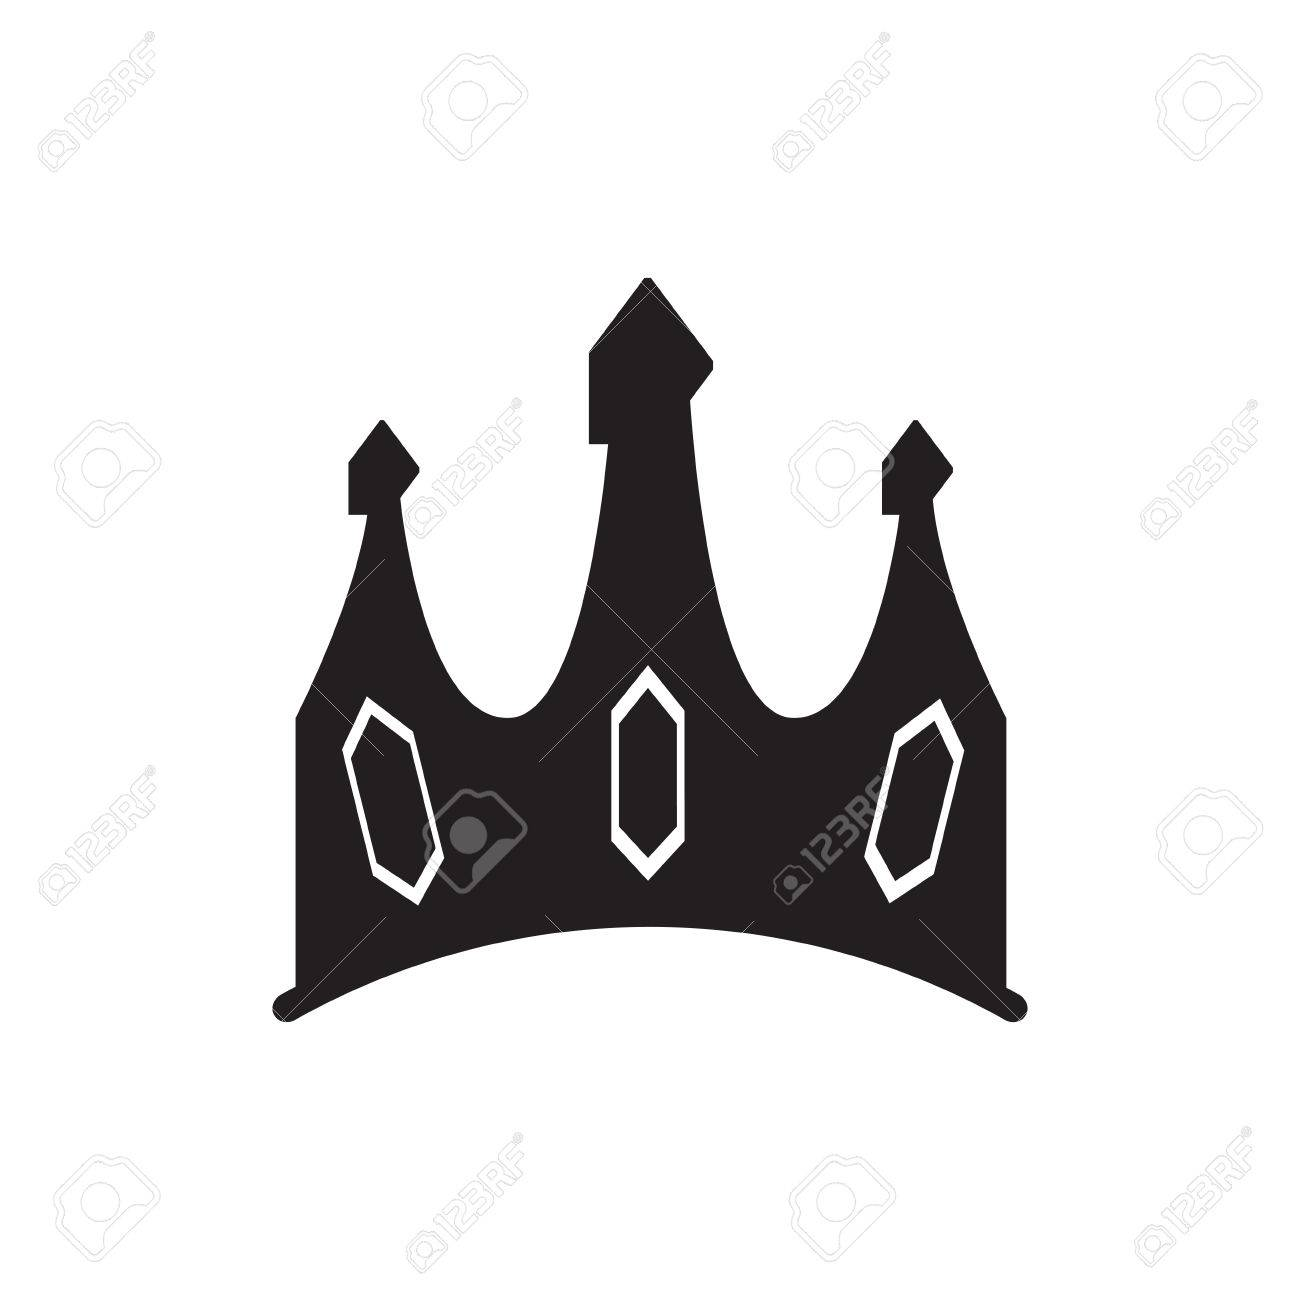 isolated silhouette of a crown vector illustration royalty free rh 123rf com crown vector file crown vector free download